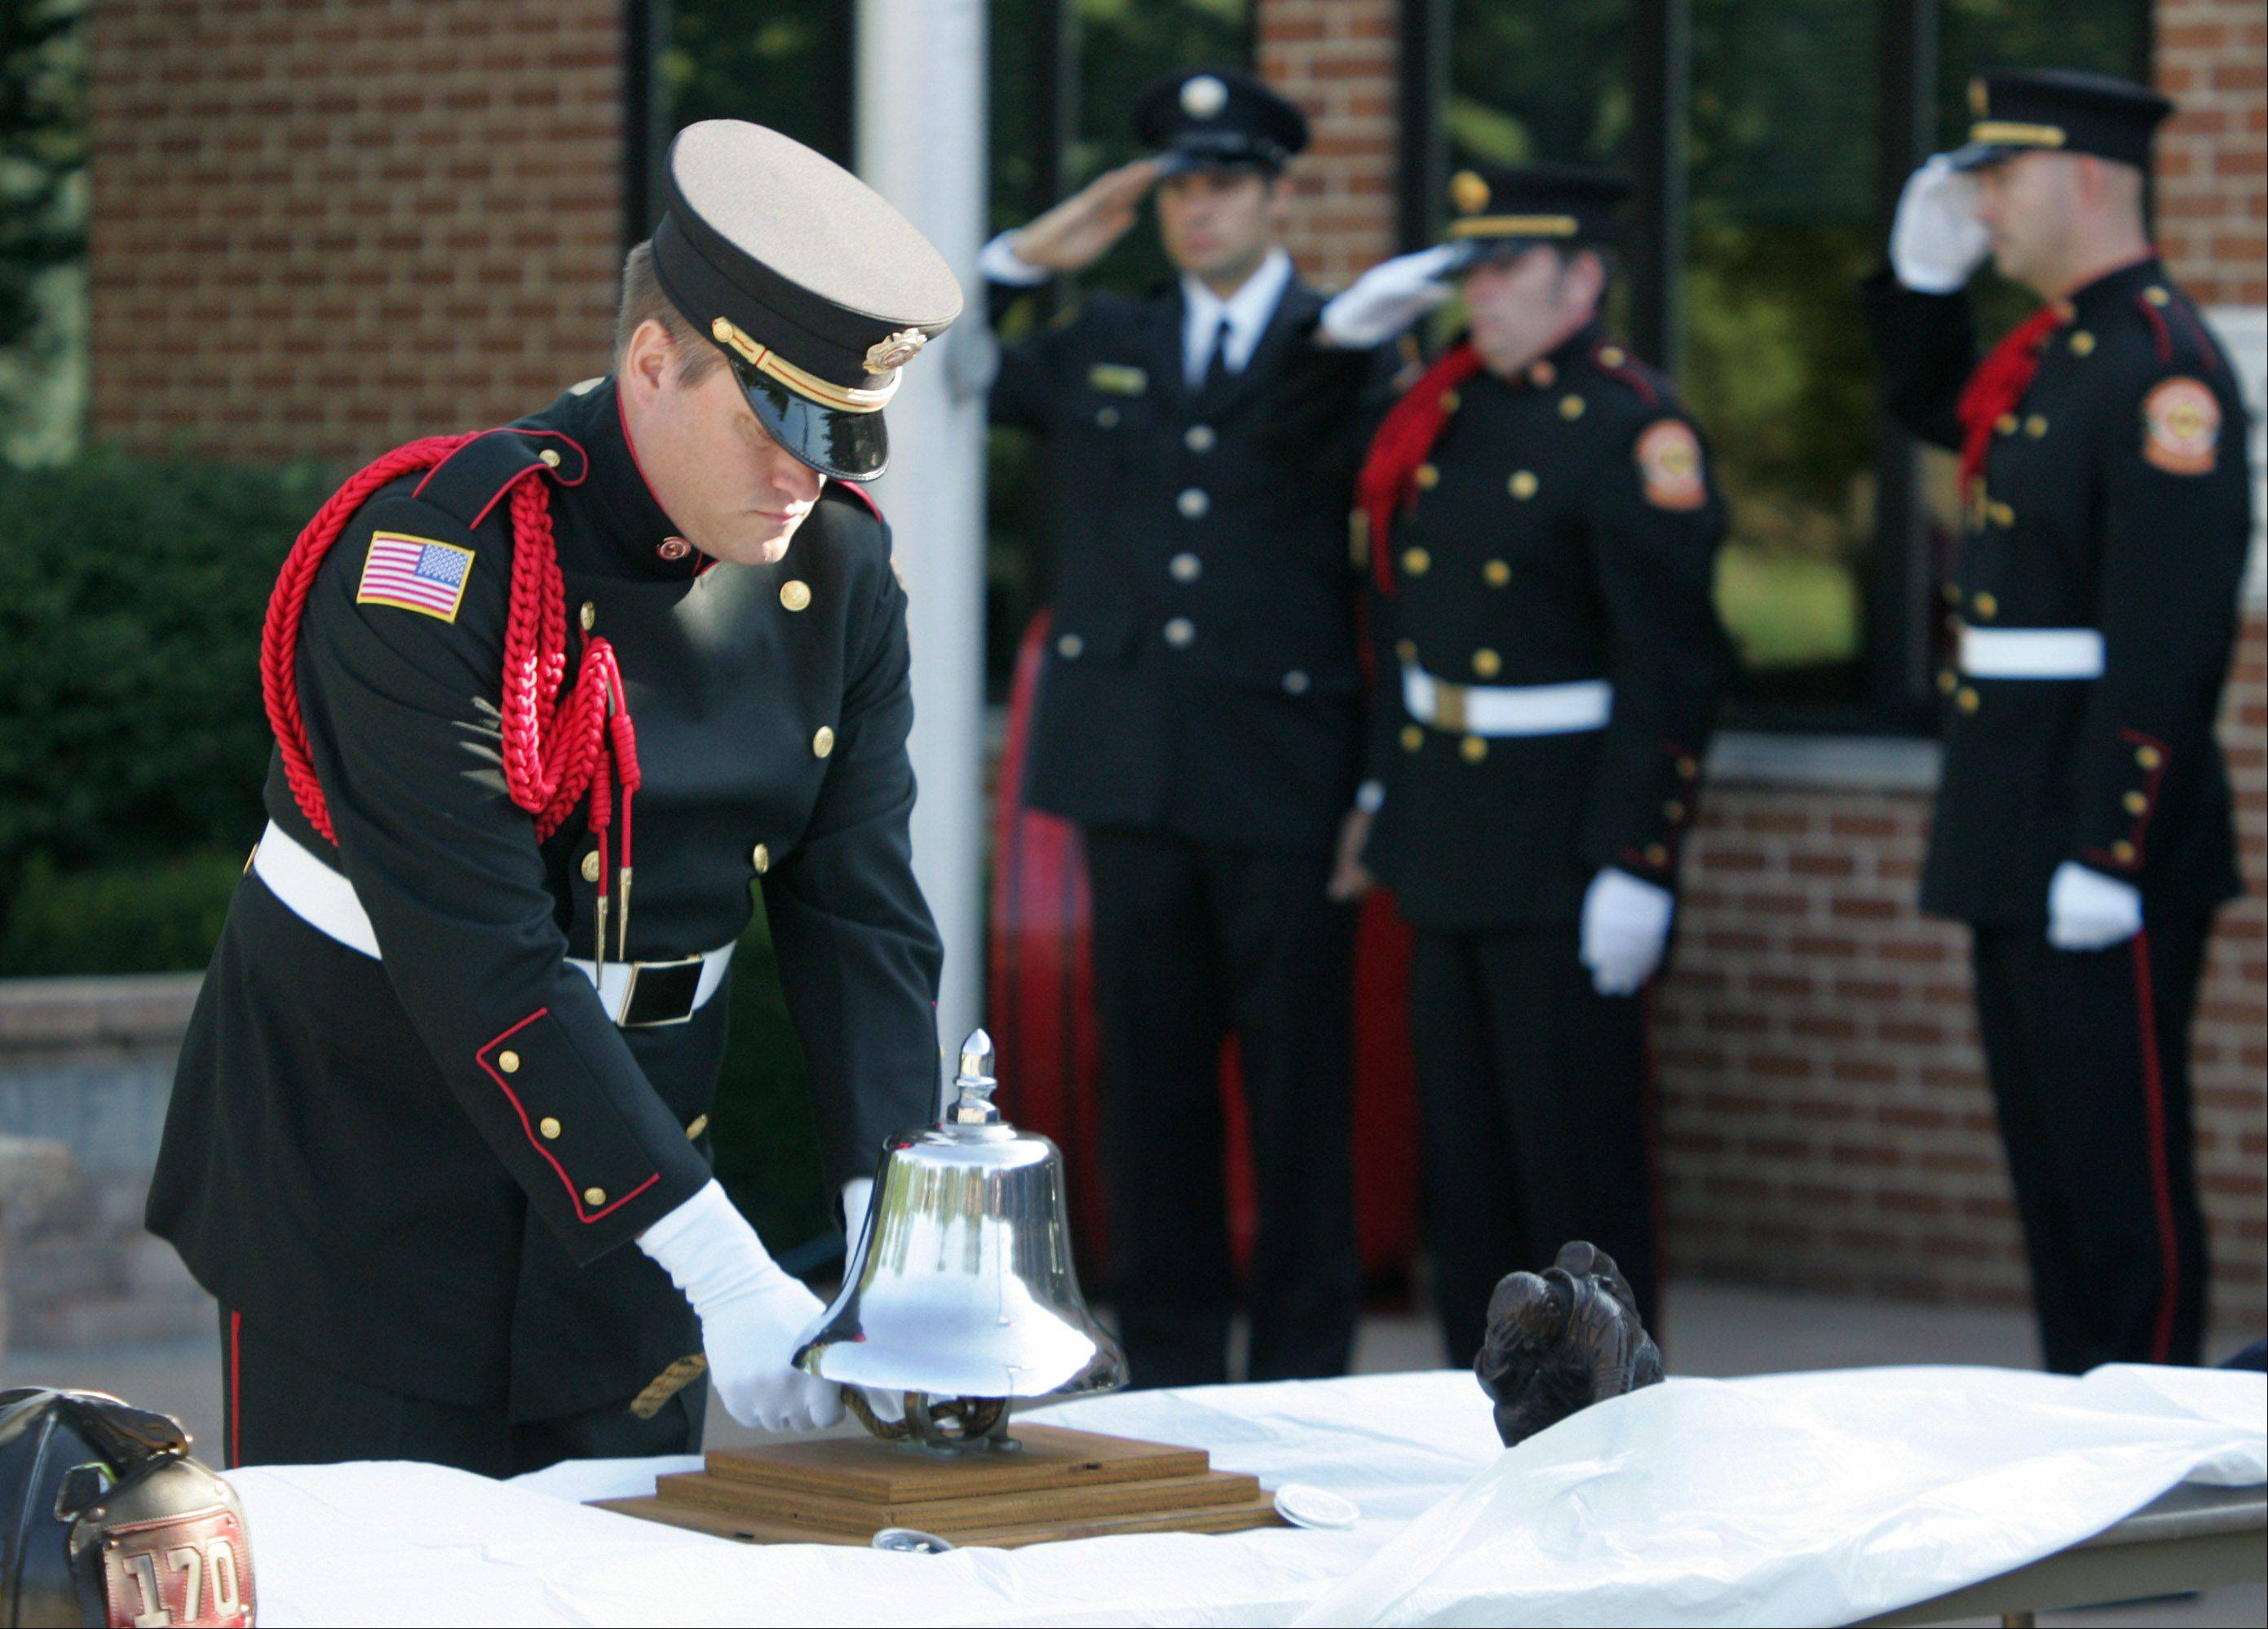 Firefighter Jim Cook rings the bell during the Remember 9-1-1 Ceremony by the Lincolnshire-Riverwoods Fire Protection District Tuesday at the fire station on Schelter Road.